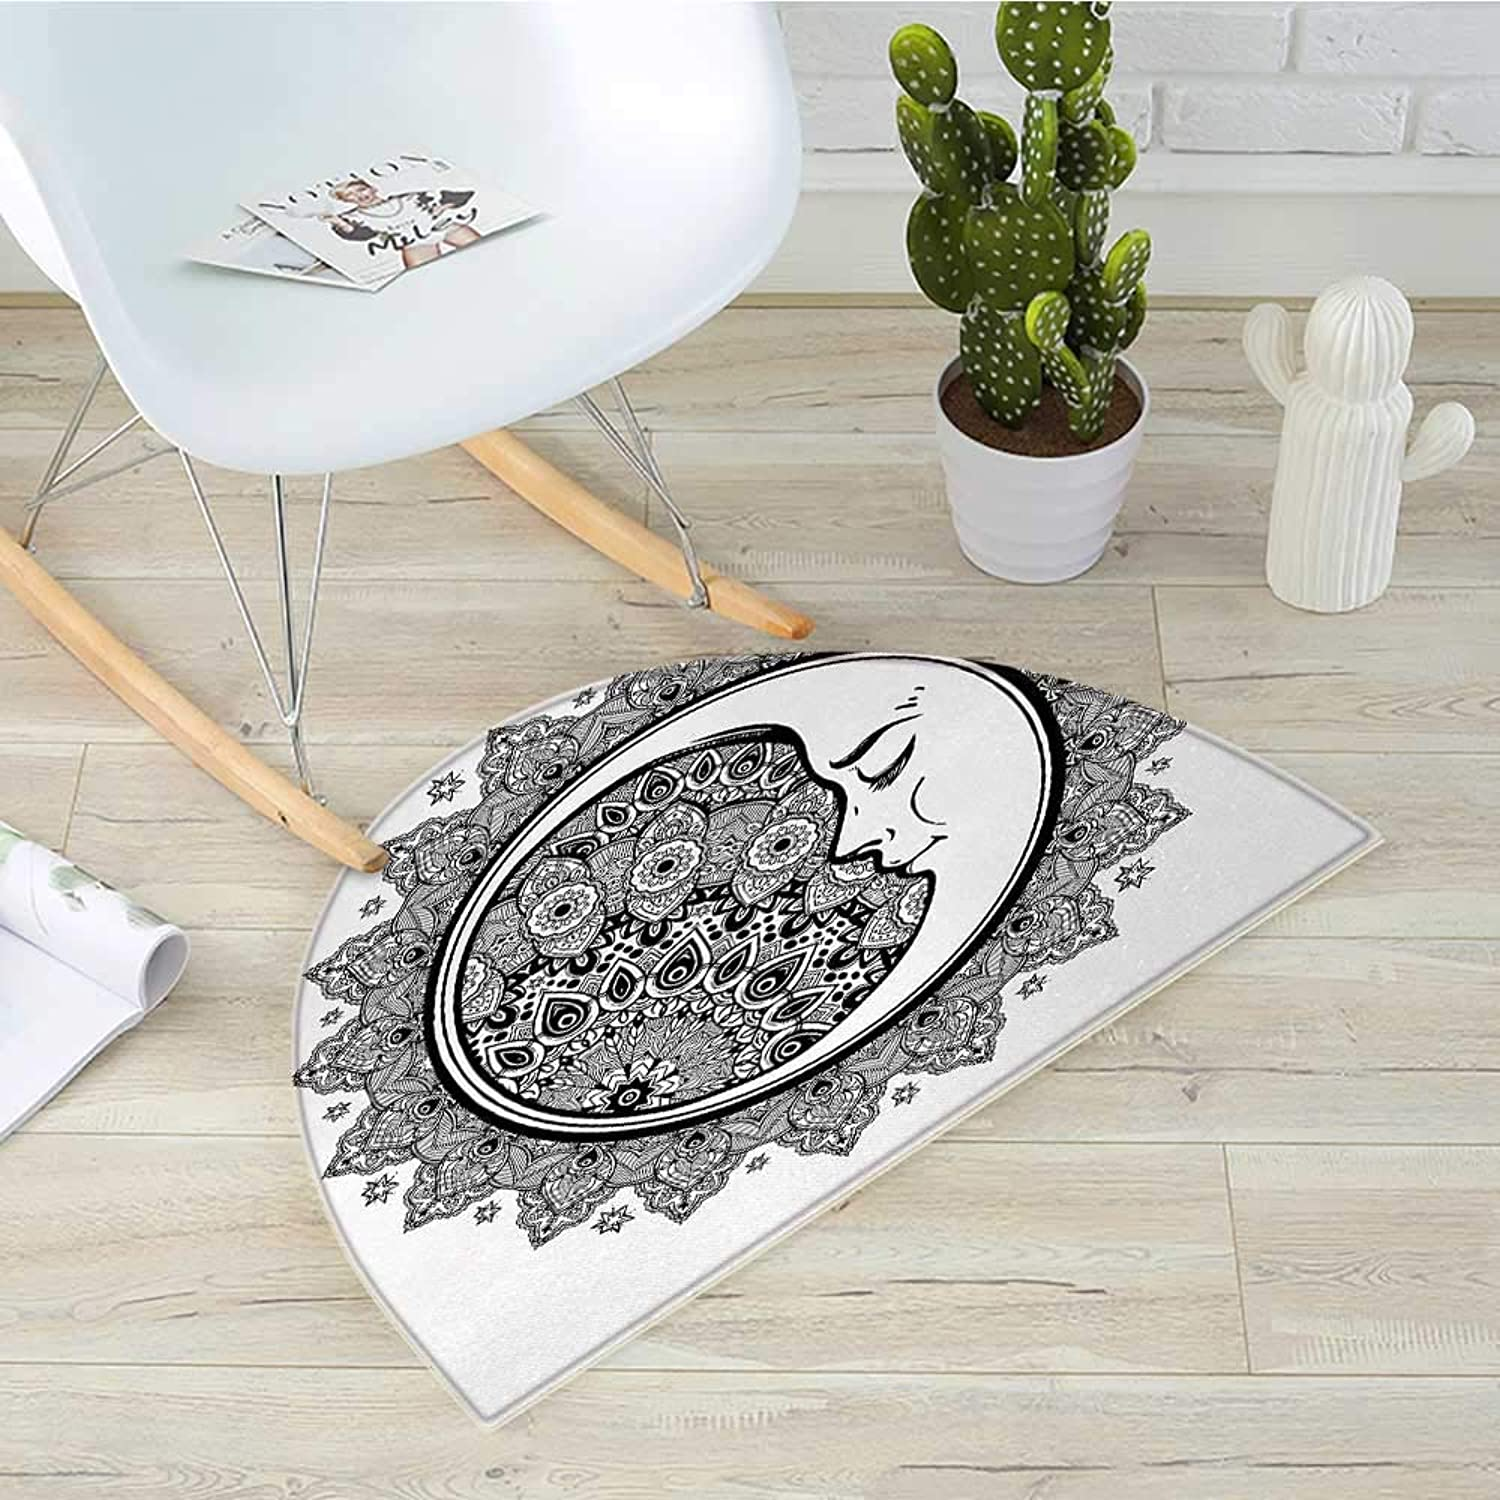 Zodiac Half Round Door mats Interlace Round Ethnic Mandala and Crescent Moon with Ethnic Folkloric Graphic Bathroom Mat H 31.5  xD 47.2  Black White